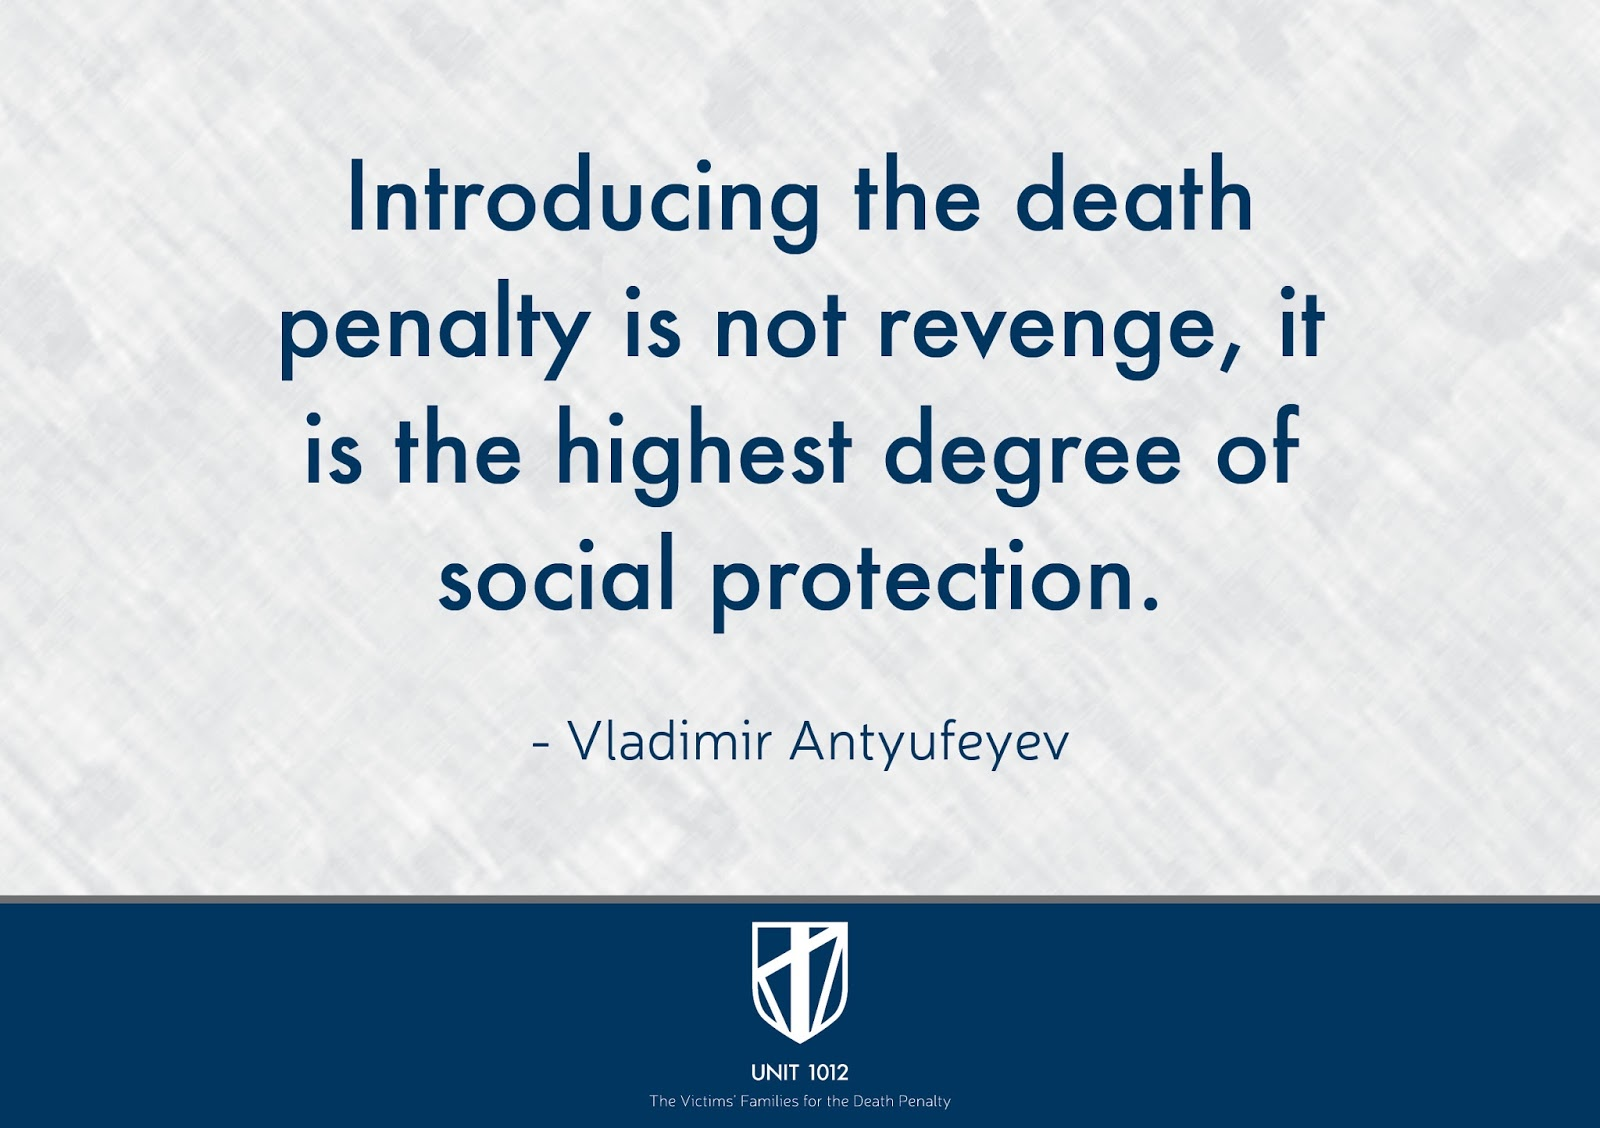 unit the victims families for the death penalty death  death penalty is a form of social protection pro death penalty quote